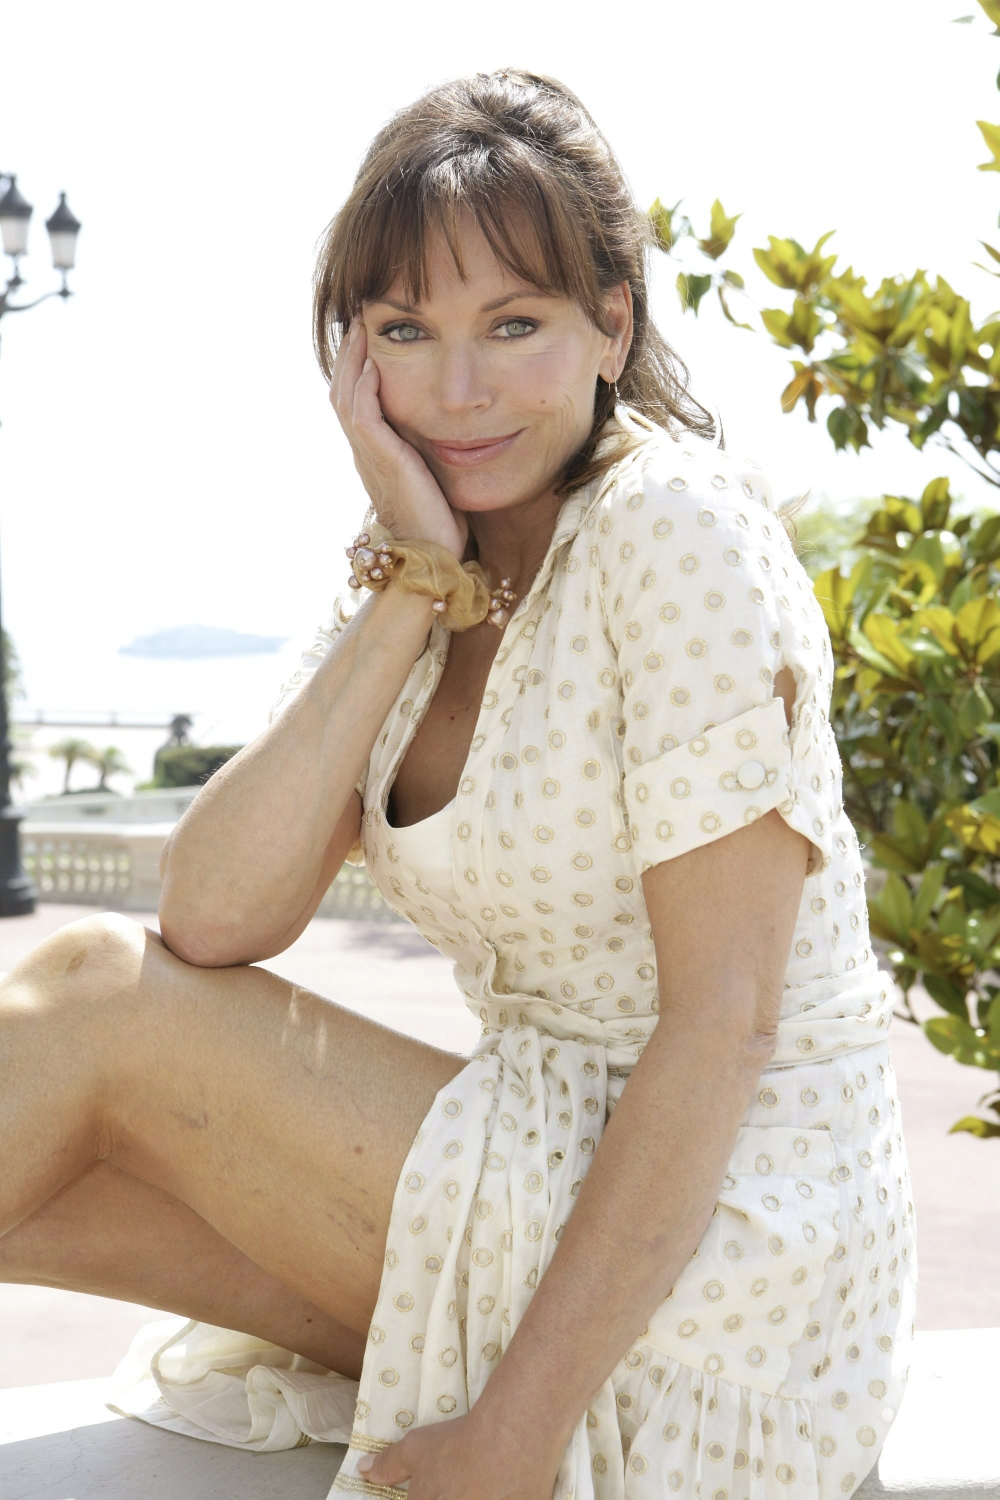 049443393_Lesley_AnneDown_UnknownPS3_122_344lo,